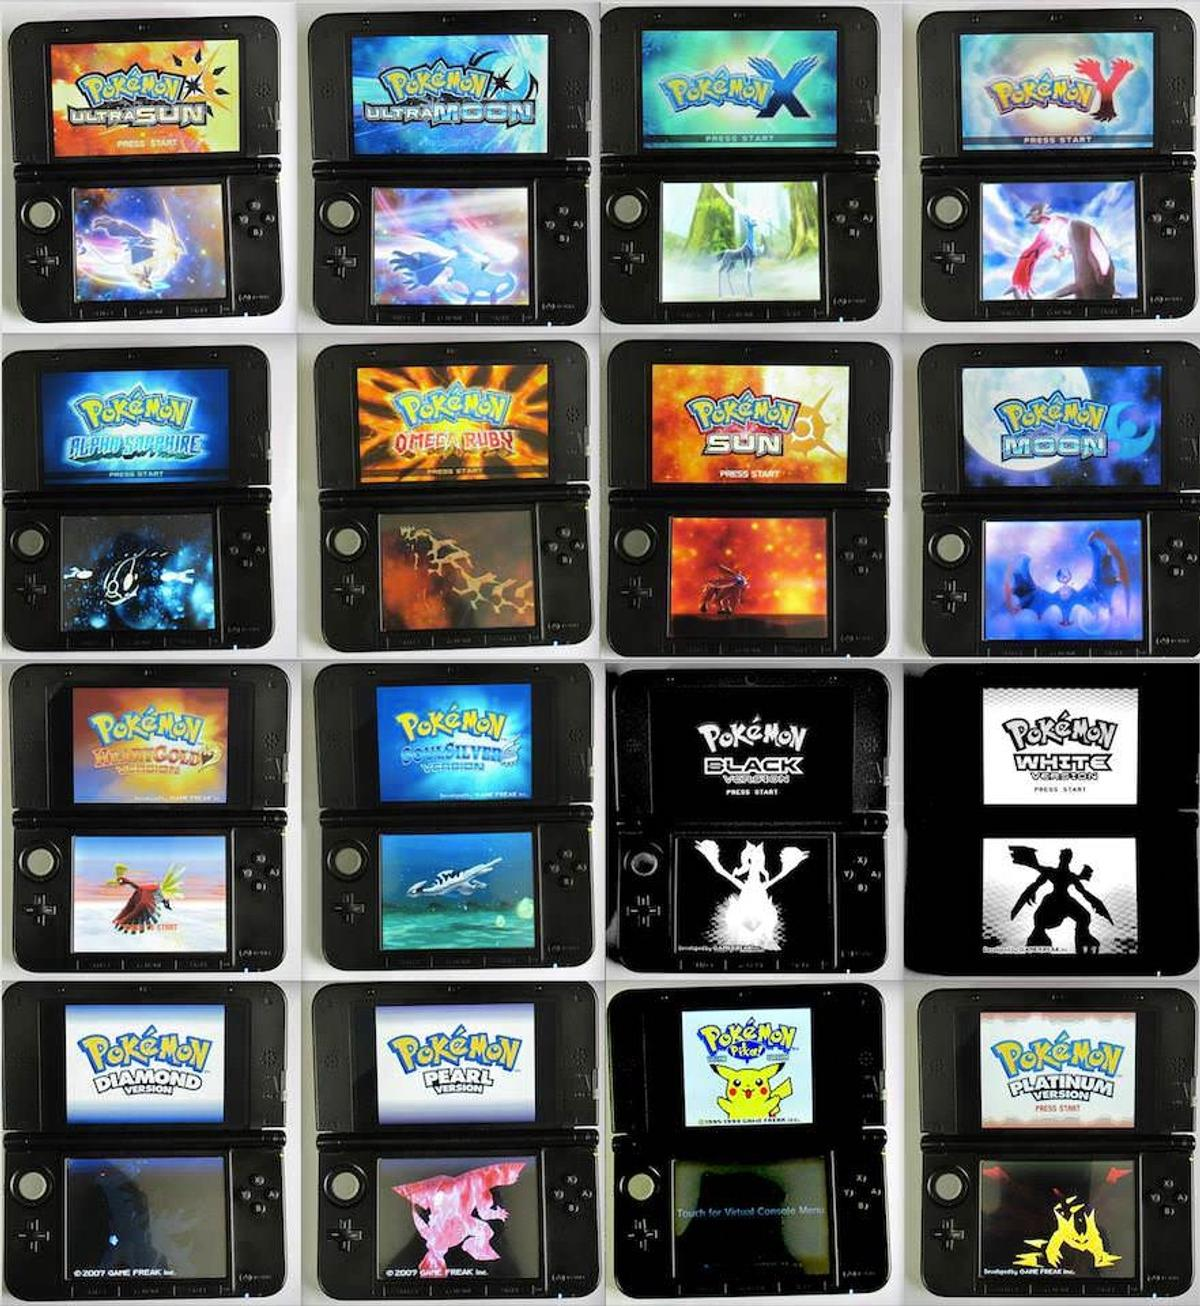 New NINTENDO 3DS/2DS 80 GAME Mod, Luma, FBI in WC2H London for